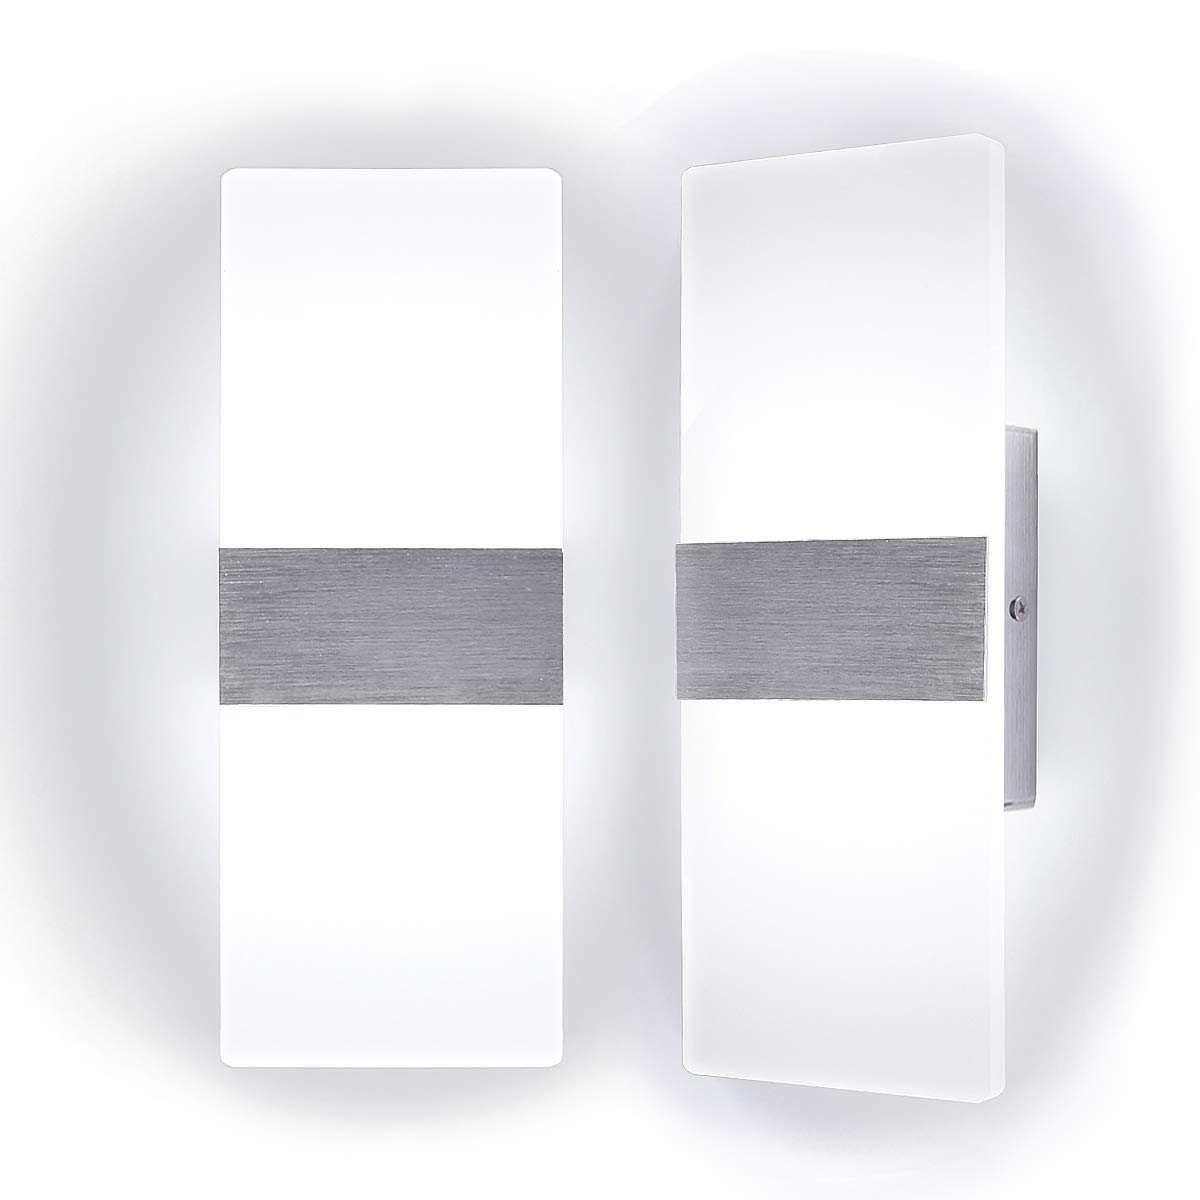 """Kernorv Modern Wall Sconce, Set of 2 Led Wall Sconces Light Modern and Fashion Cool White Led Wall Light for Bedroom Living Room Balcony Porch Office Hotel and Hallway 11.4"""" x 4.3"""" (12W, 6000K)"""